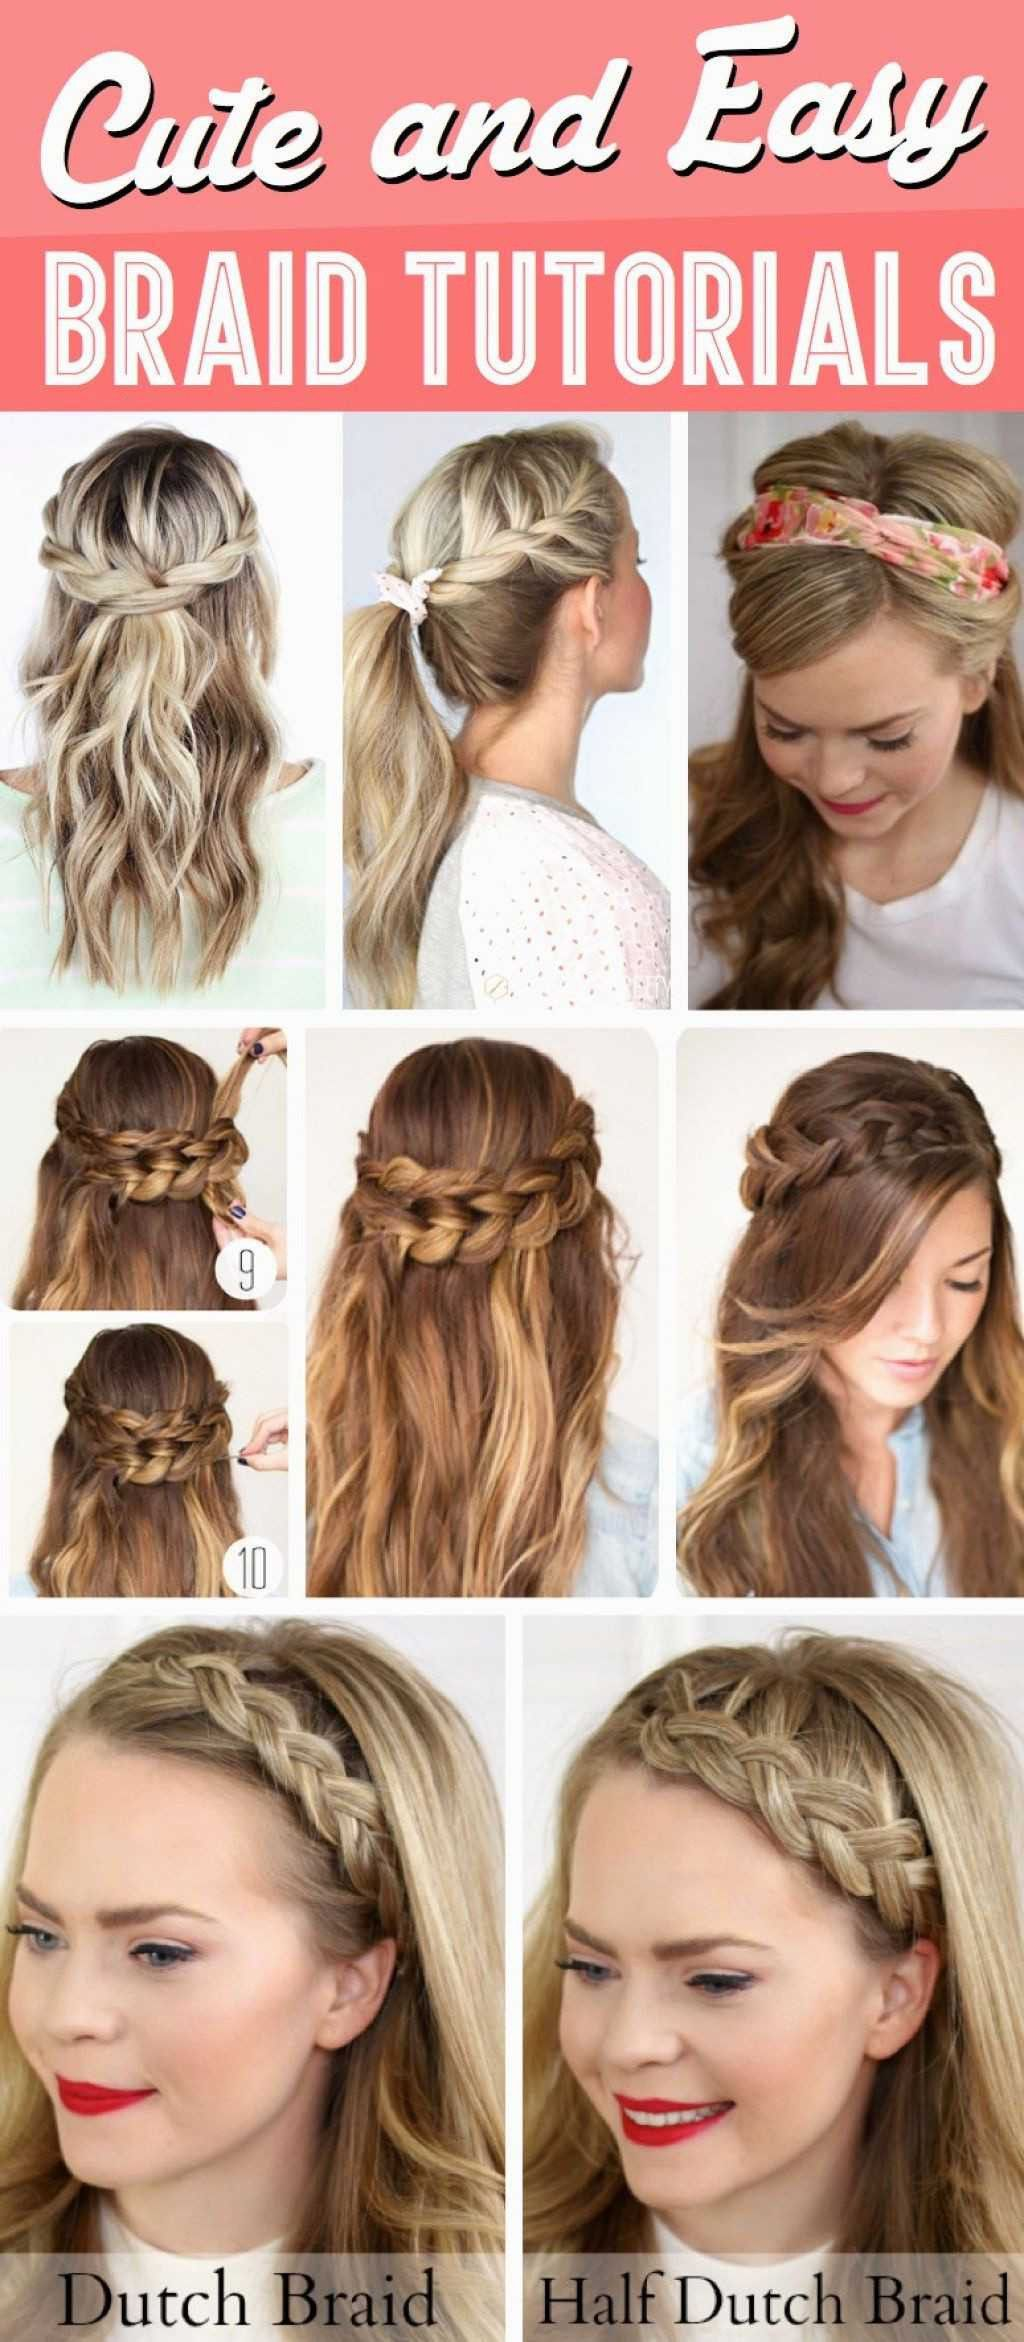 Cute Updo Hairstyles For Easter Gegeheme Easy Braids Braids Tutorial Easy Braided Hairstyles Easy